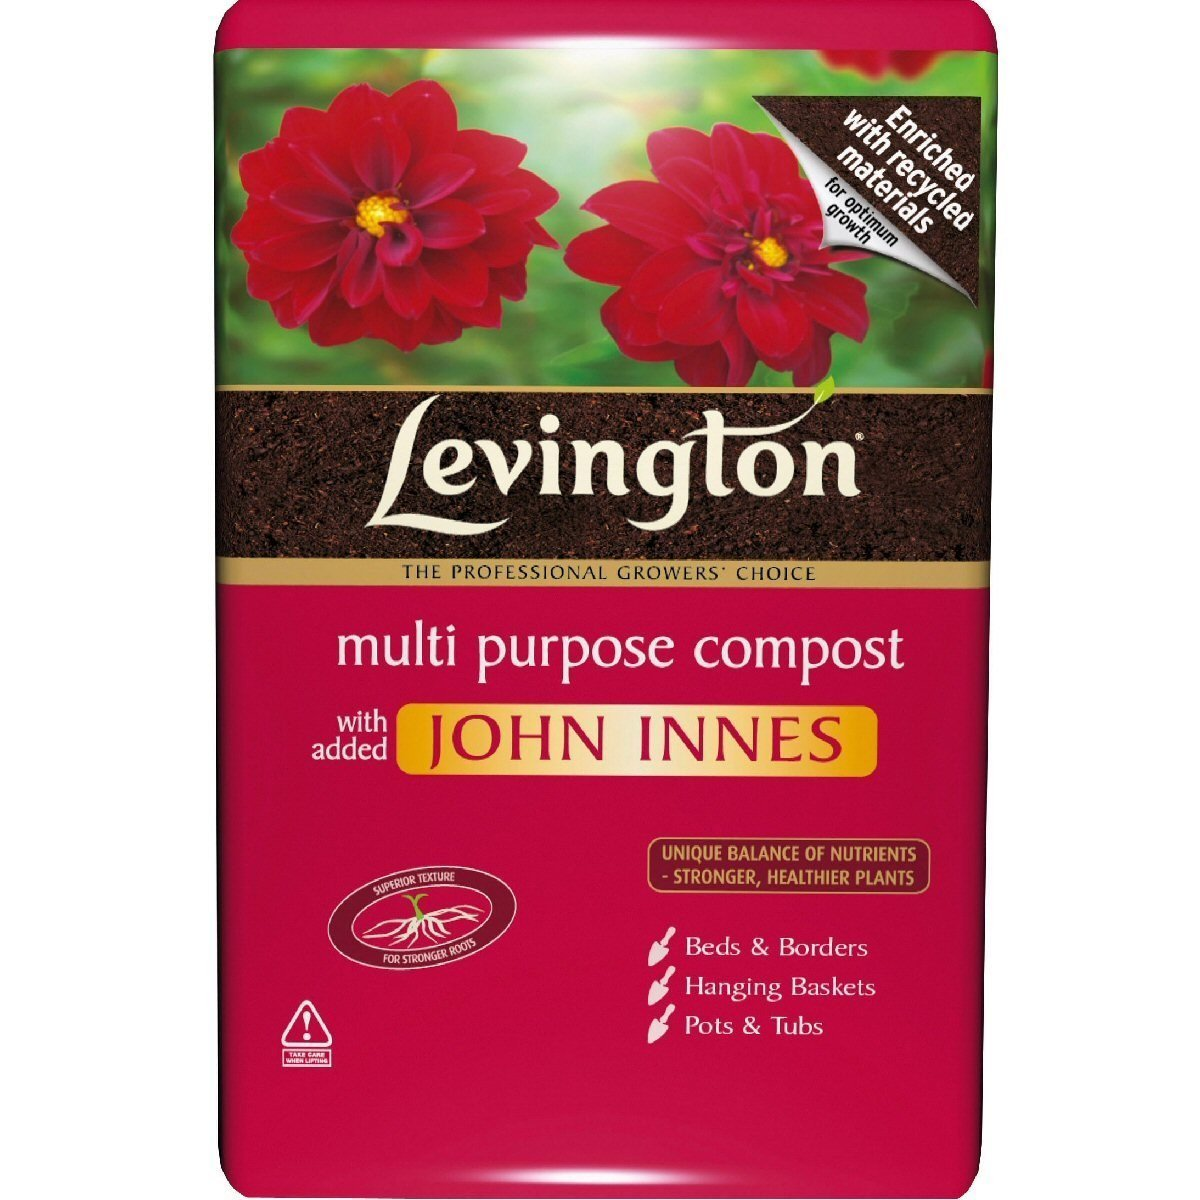 Image for westland multi purpose compost with john innes 50l from - Levington Multi Purpose Compost With Added John Innes 8ltr Amazon Co Uk Garden Outdoors